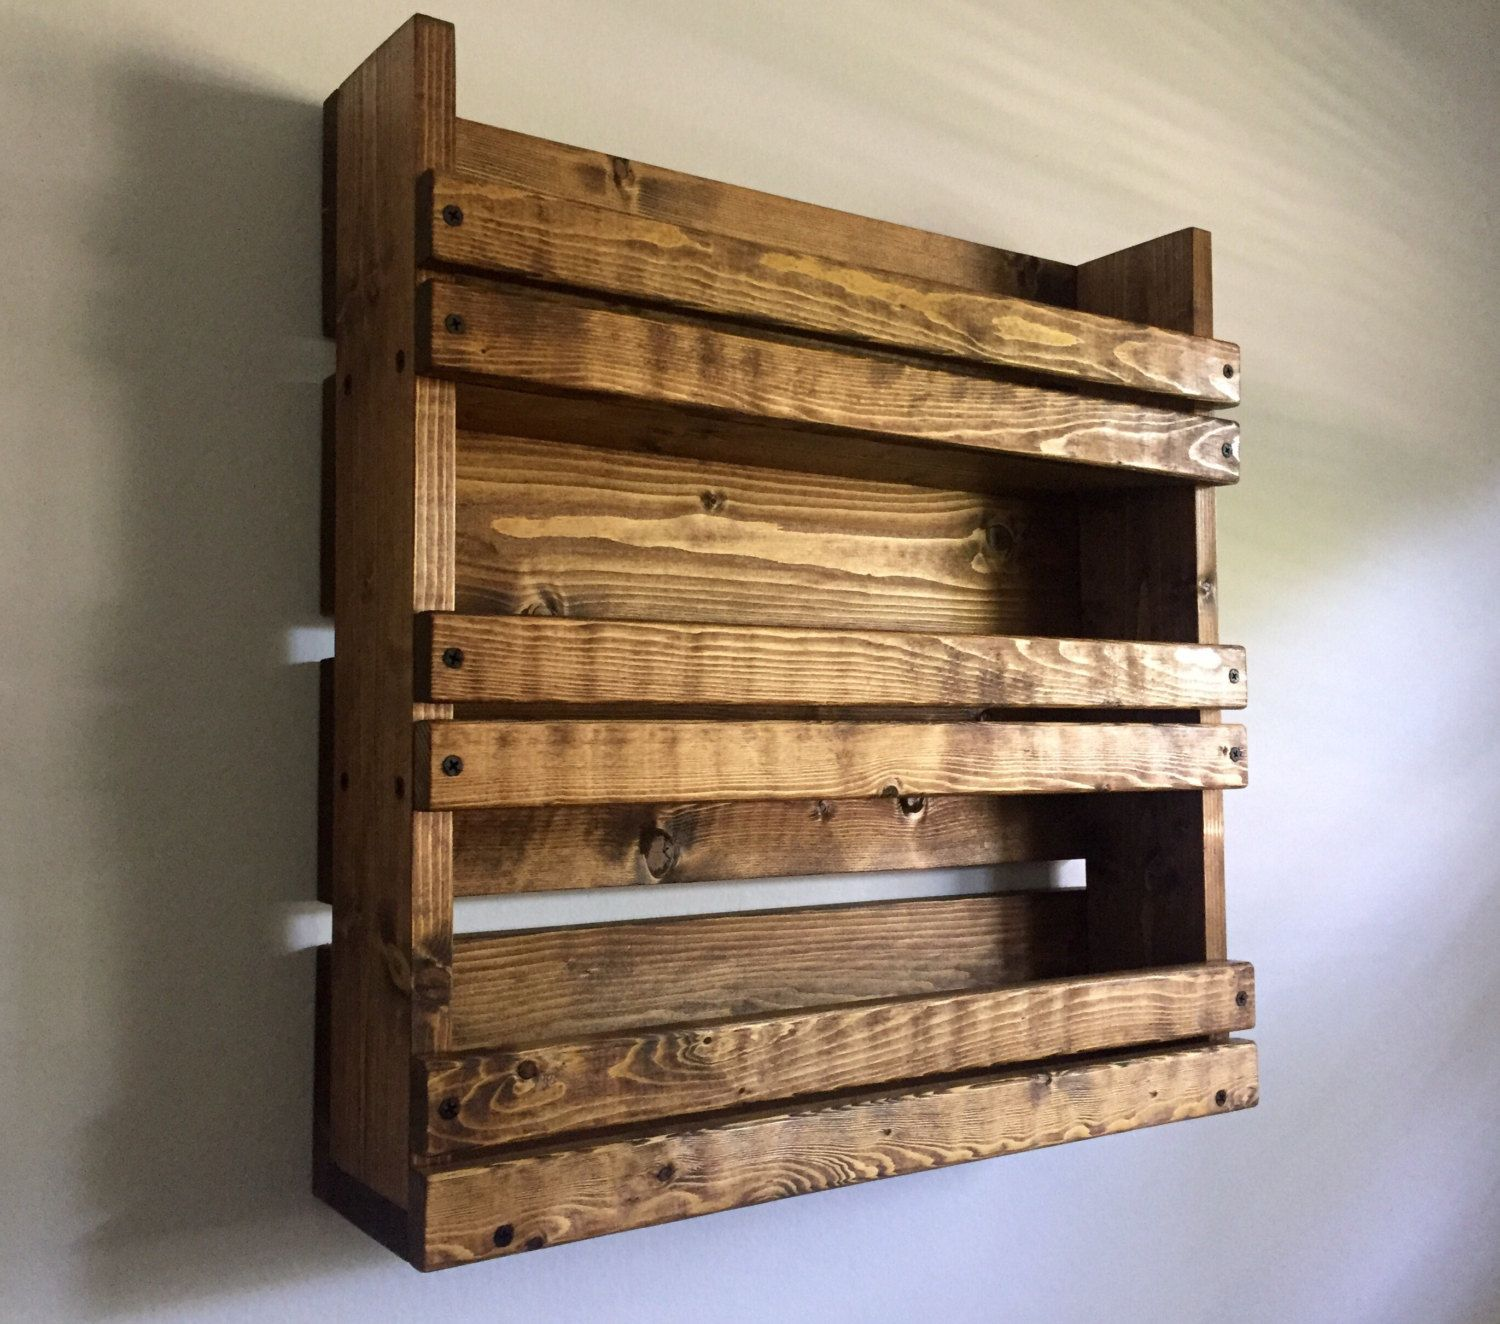 Wood Spice Rack For Wall Awesome Spice Rack Rustic Spice Rack With 3 Shelves Kitchen Organizer Decorating Design